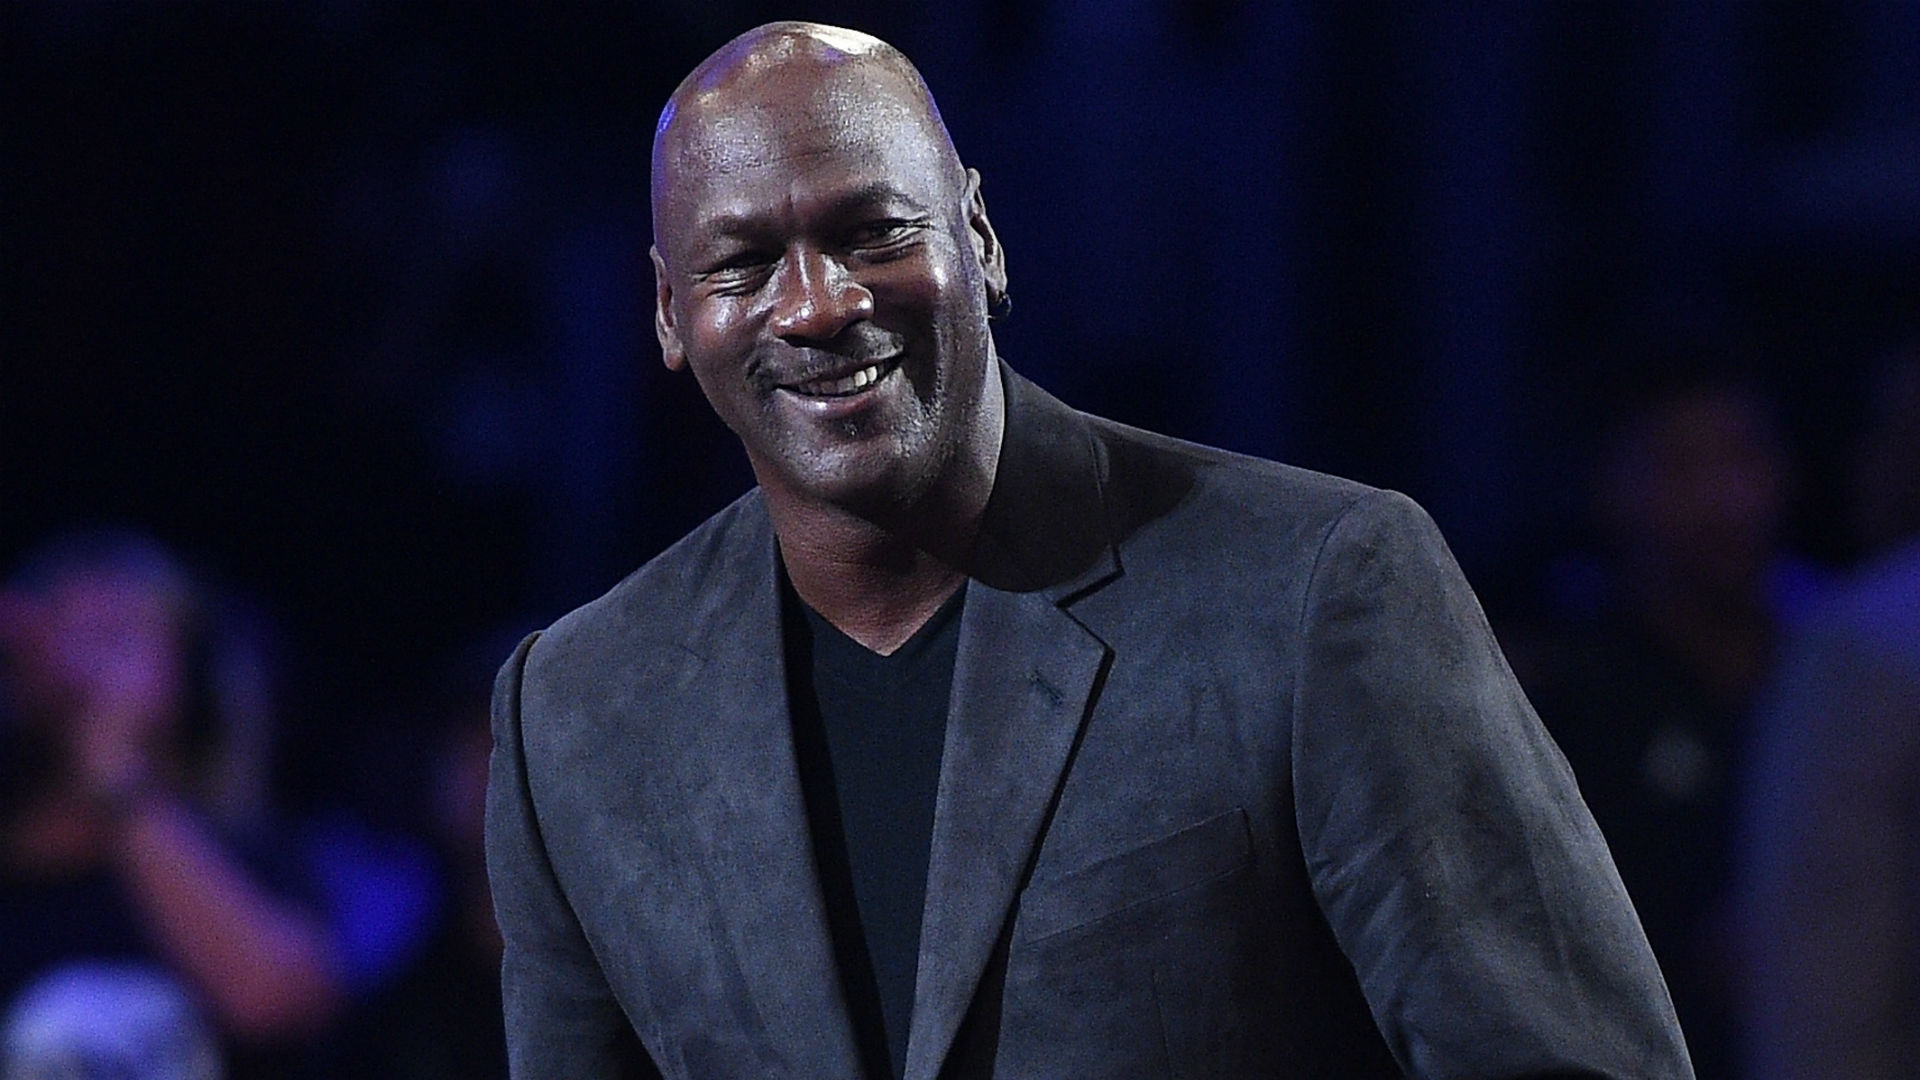 Michael Jordan: Winning 6 Championships Harder Than Harden And Westbrook's Streaks